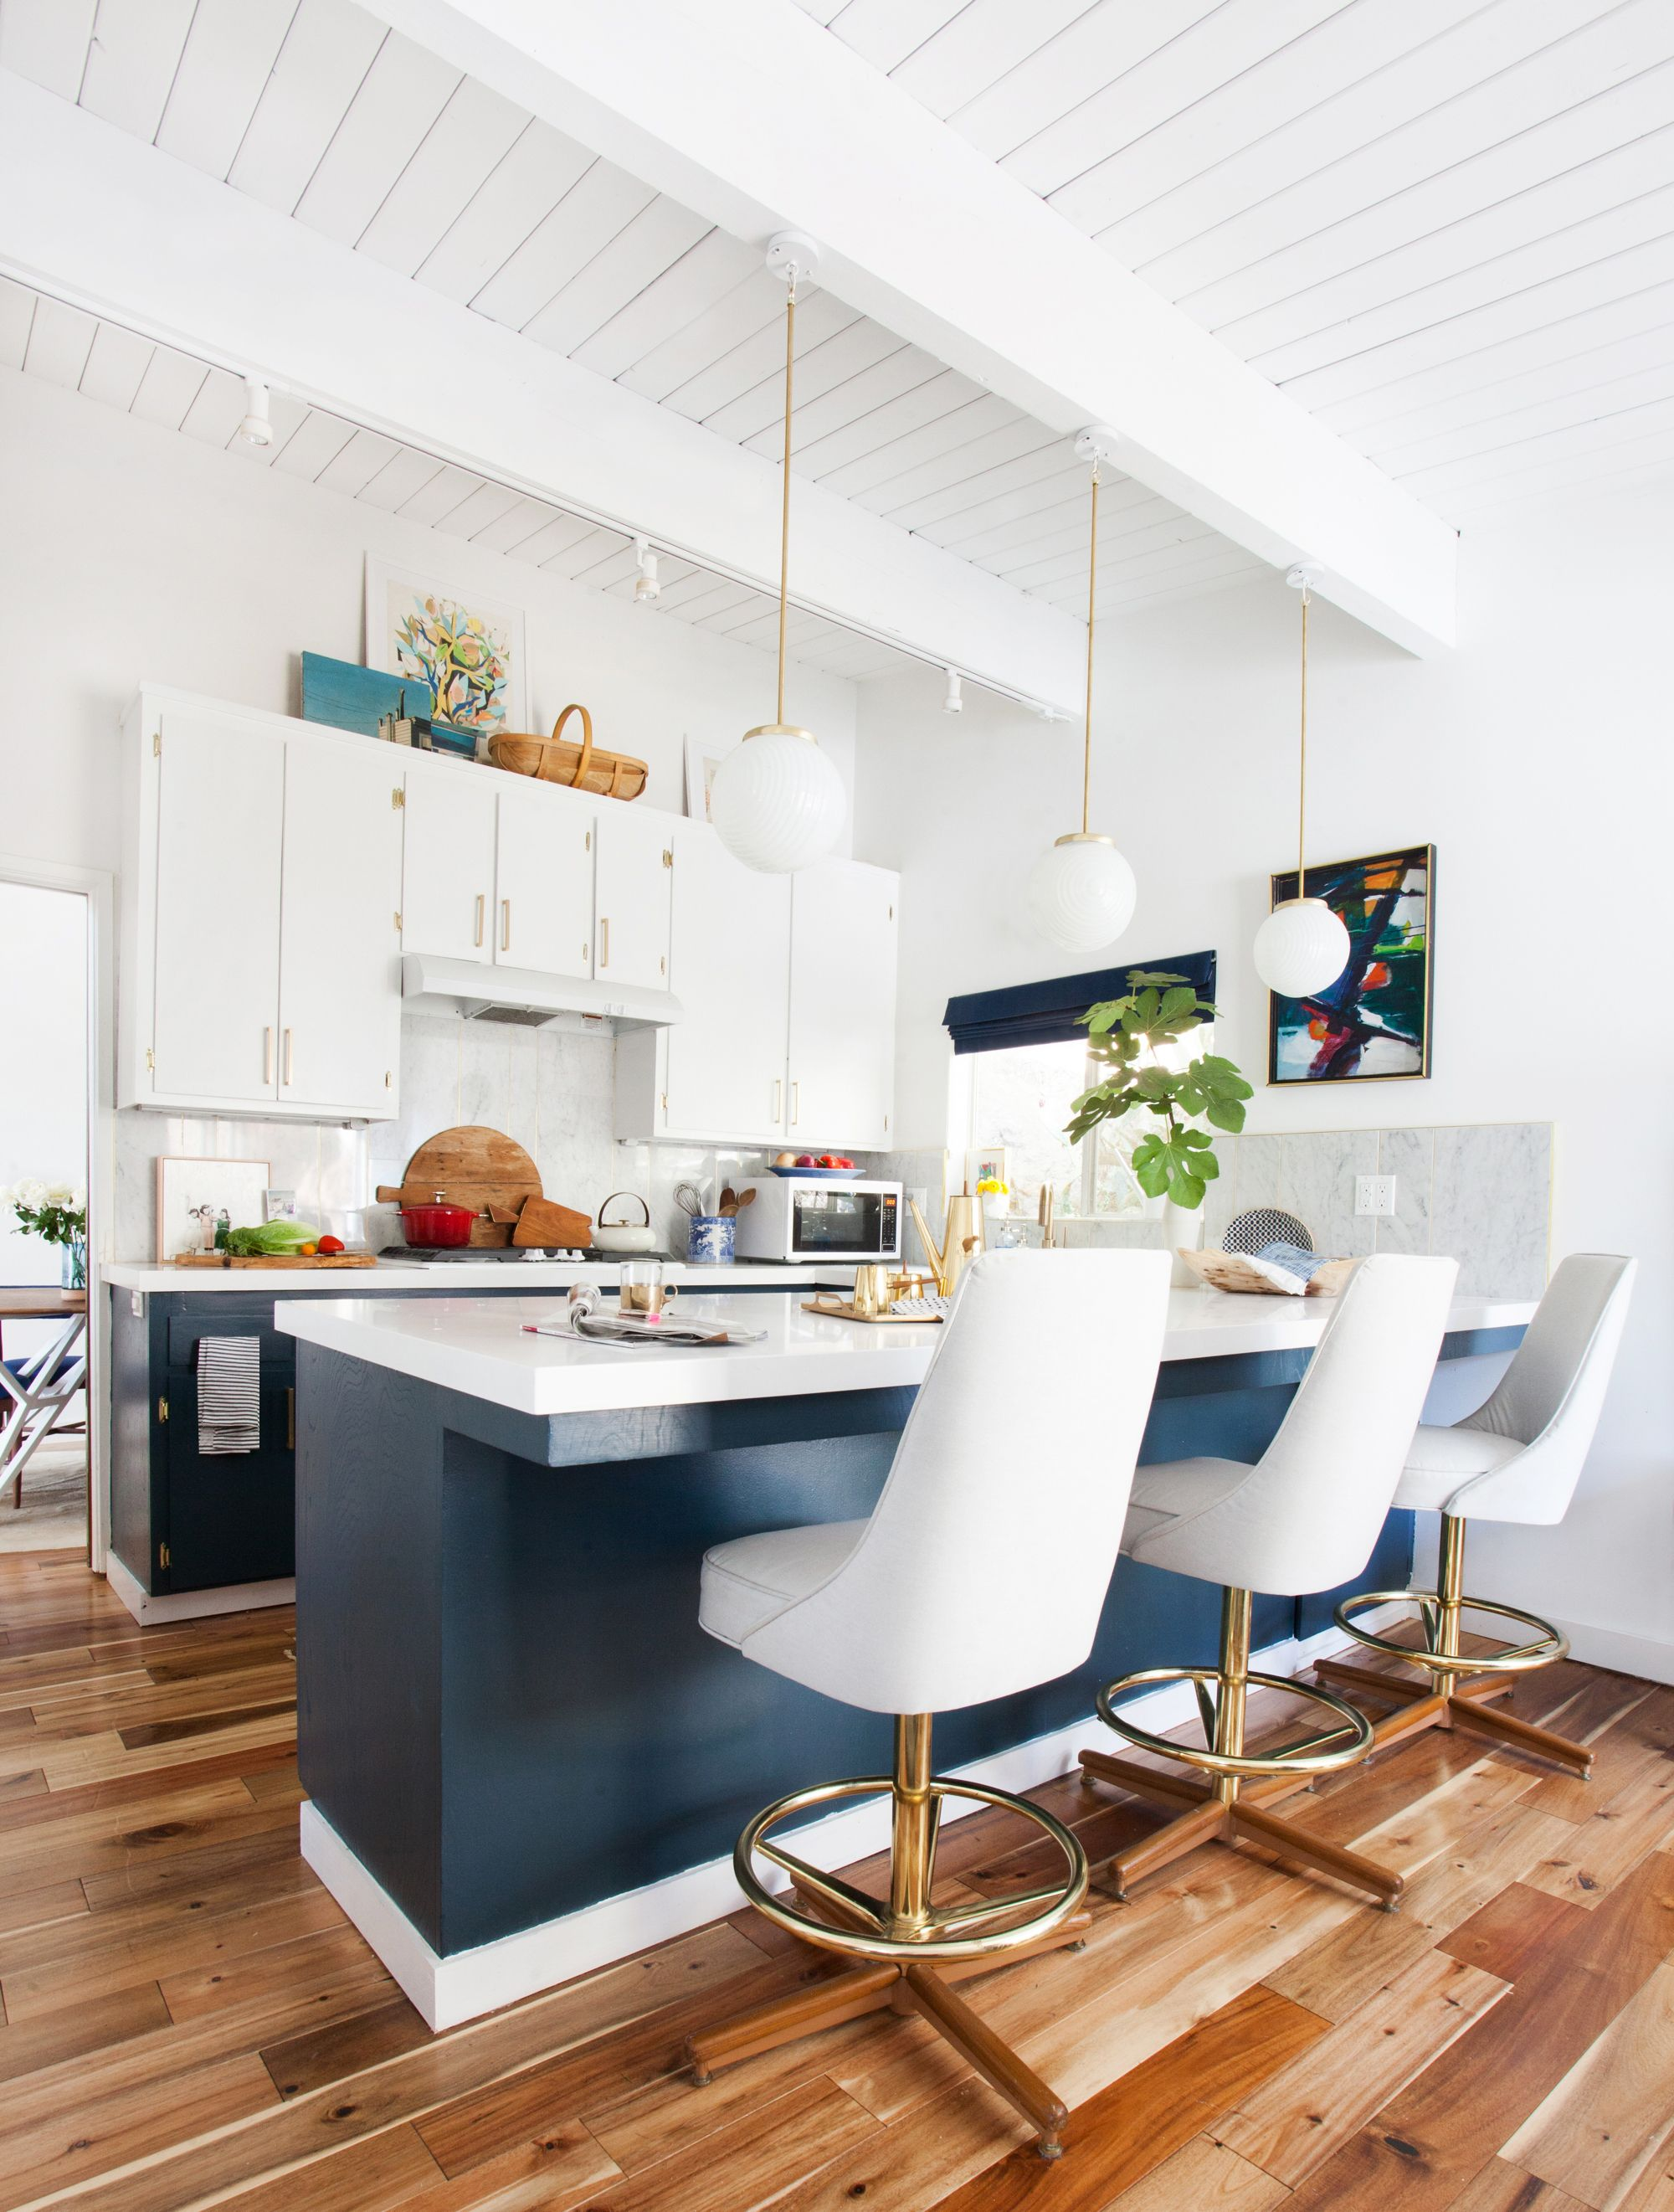 10 Swoon Worthy Kitchens | Finals, Kitchens and Big